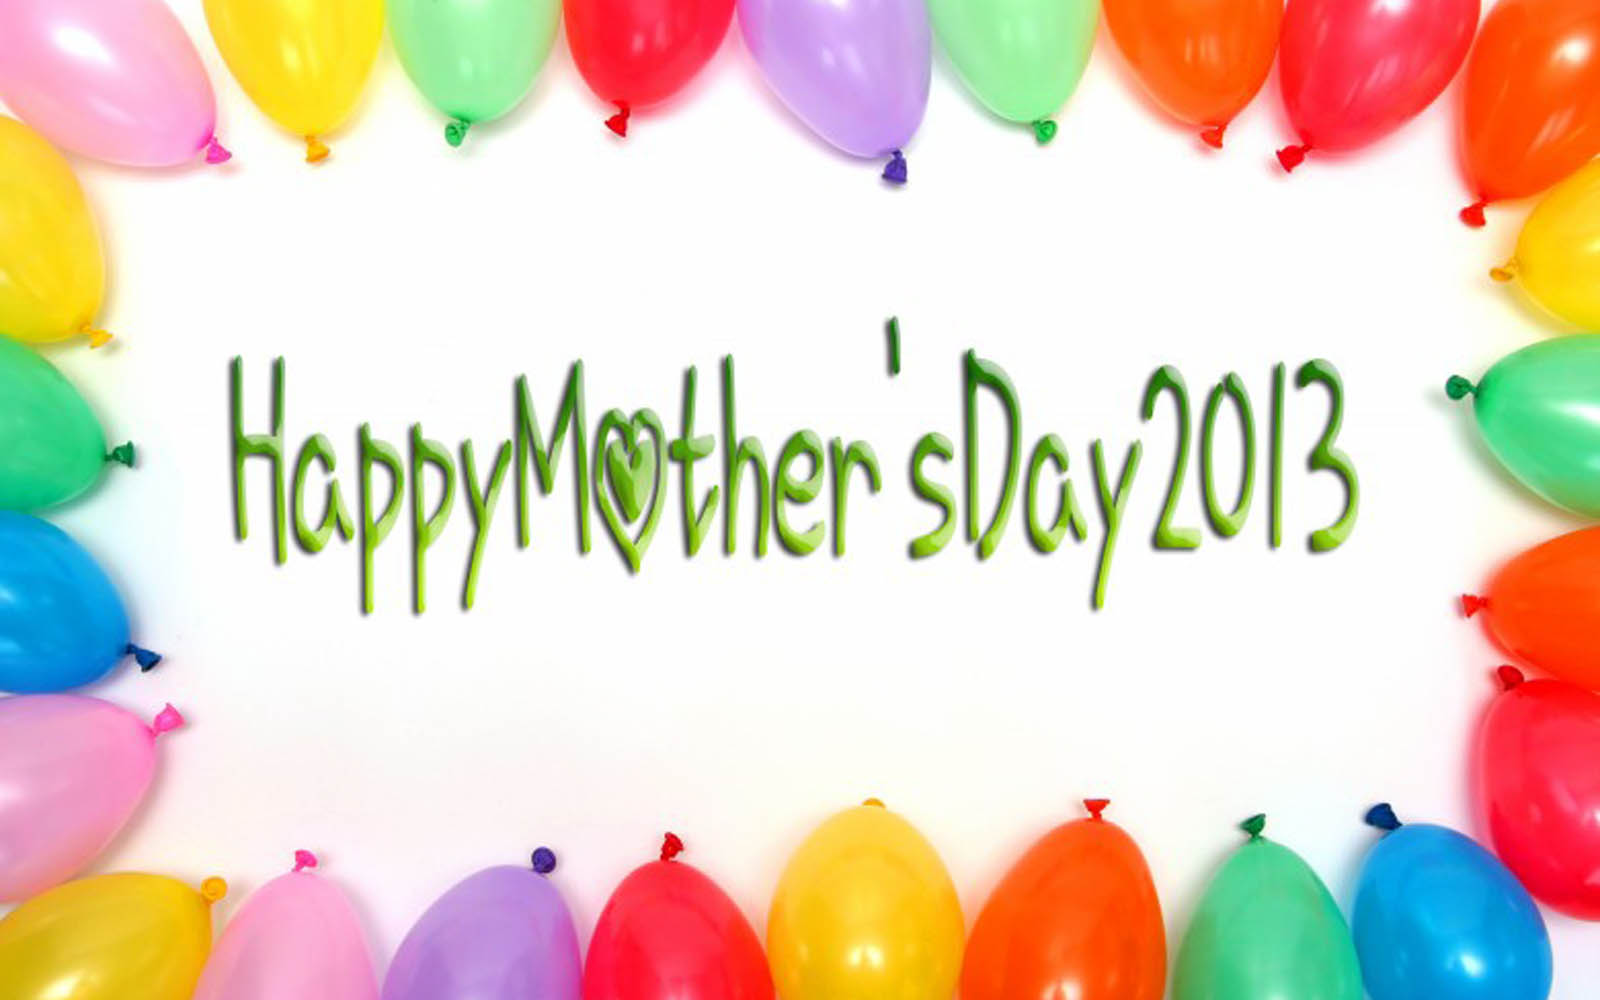 Atoz Nature Wallpapers Happy Mothers Day Wallpapers 1600x1000